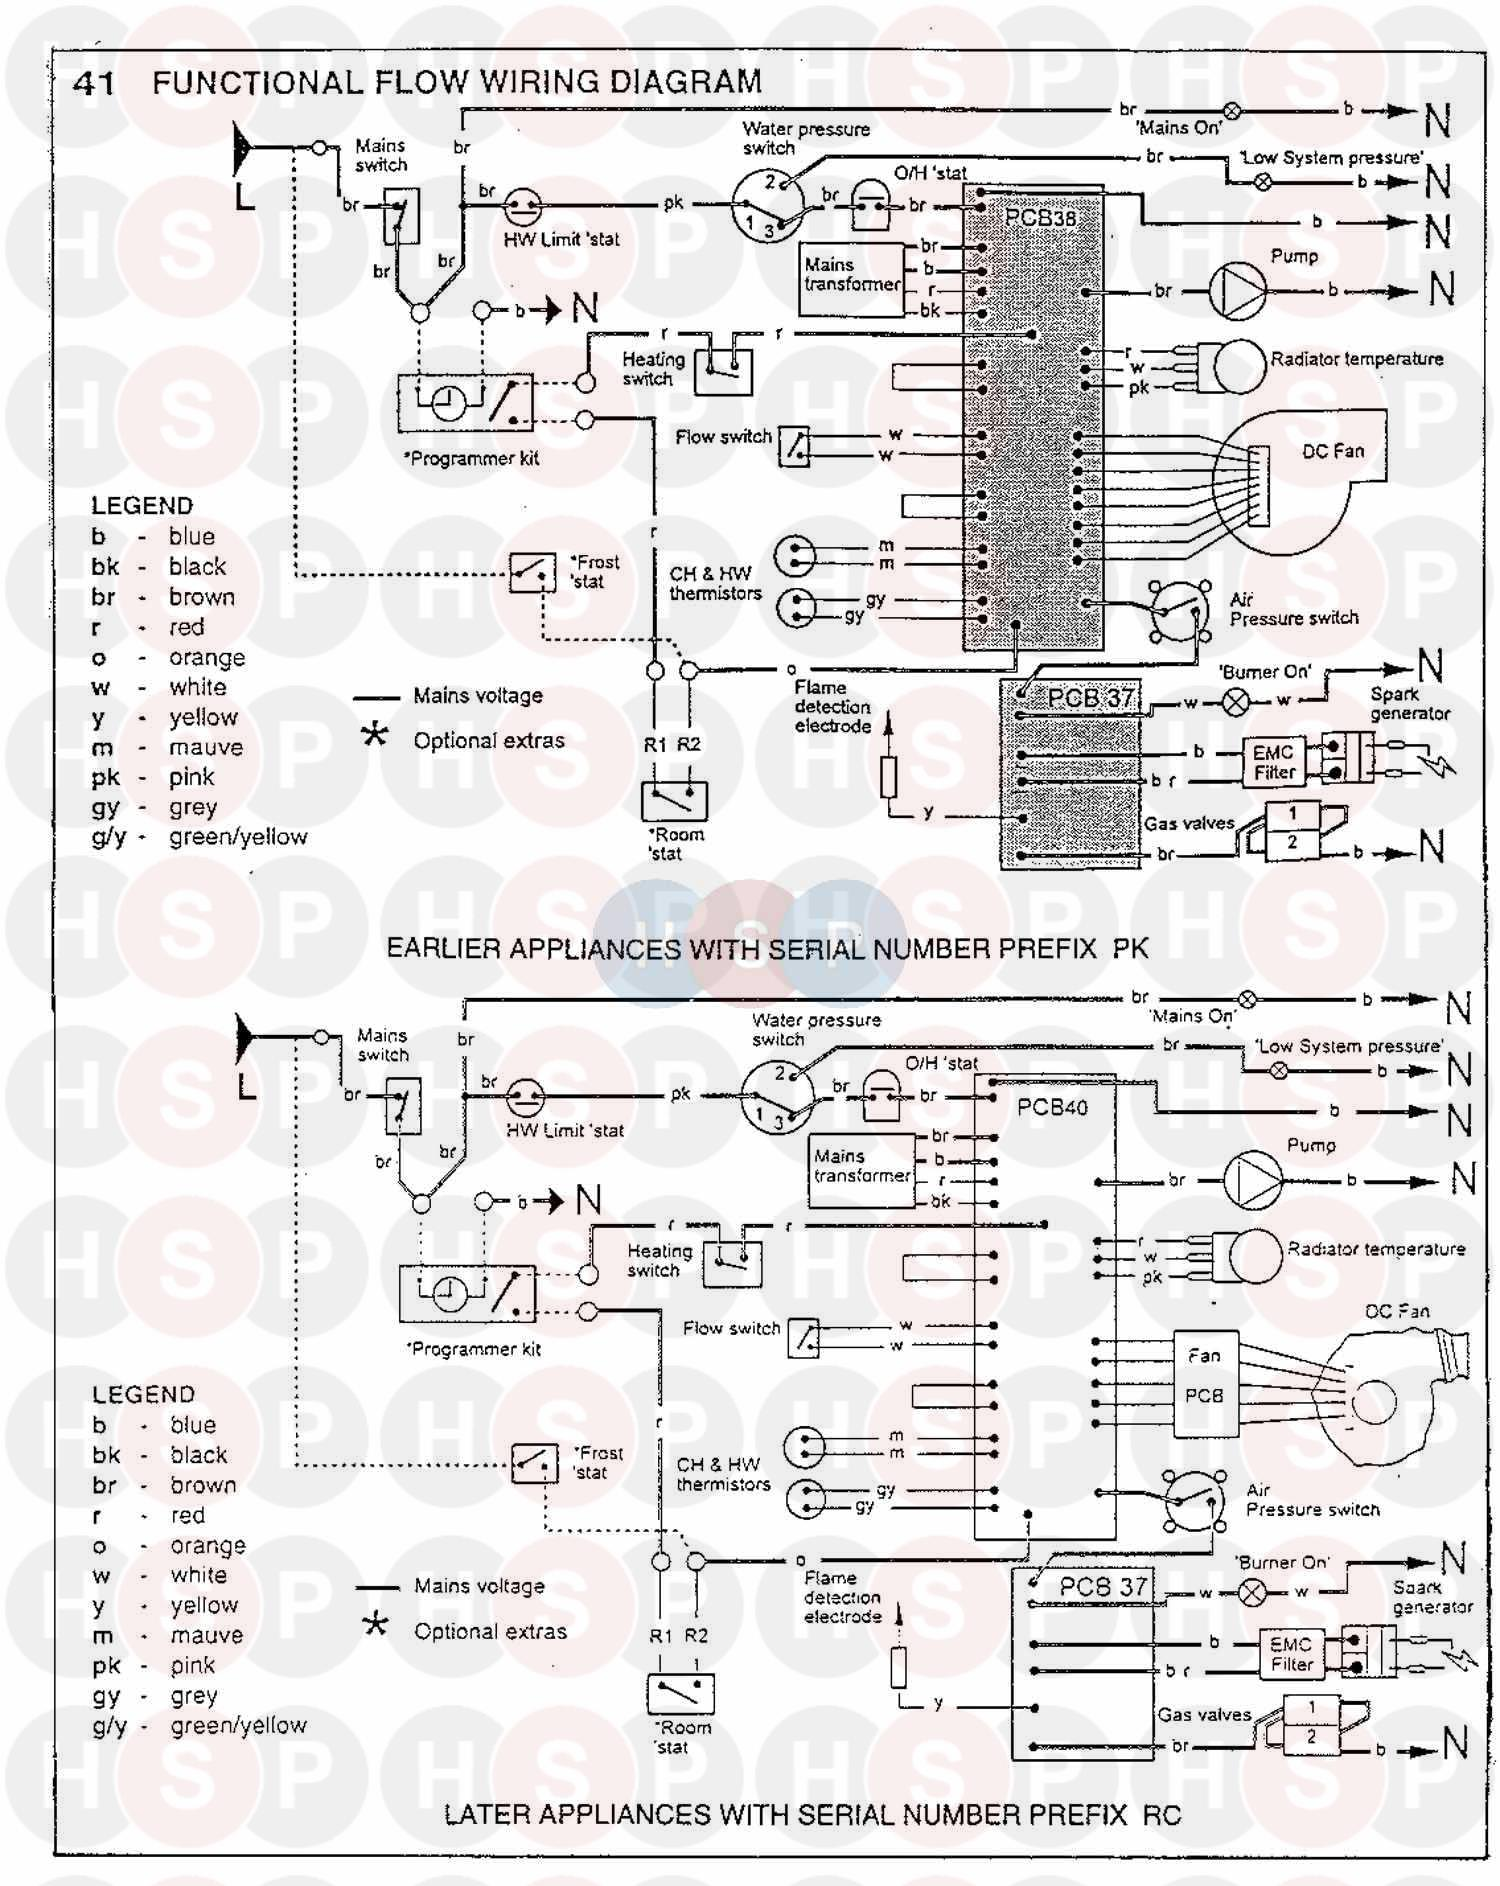 Ideal Response 80 Wiring Diagram 3 Heating Spare Parts Air Pressor Click The To Open It On A New Page